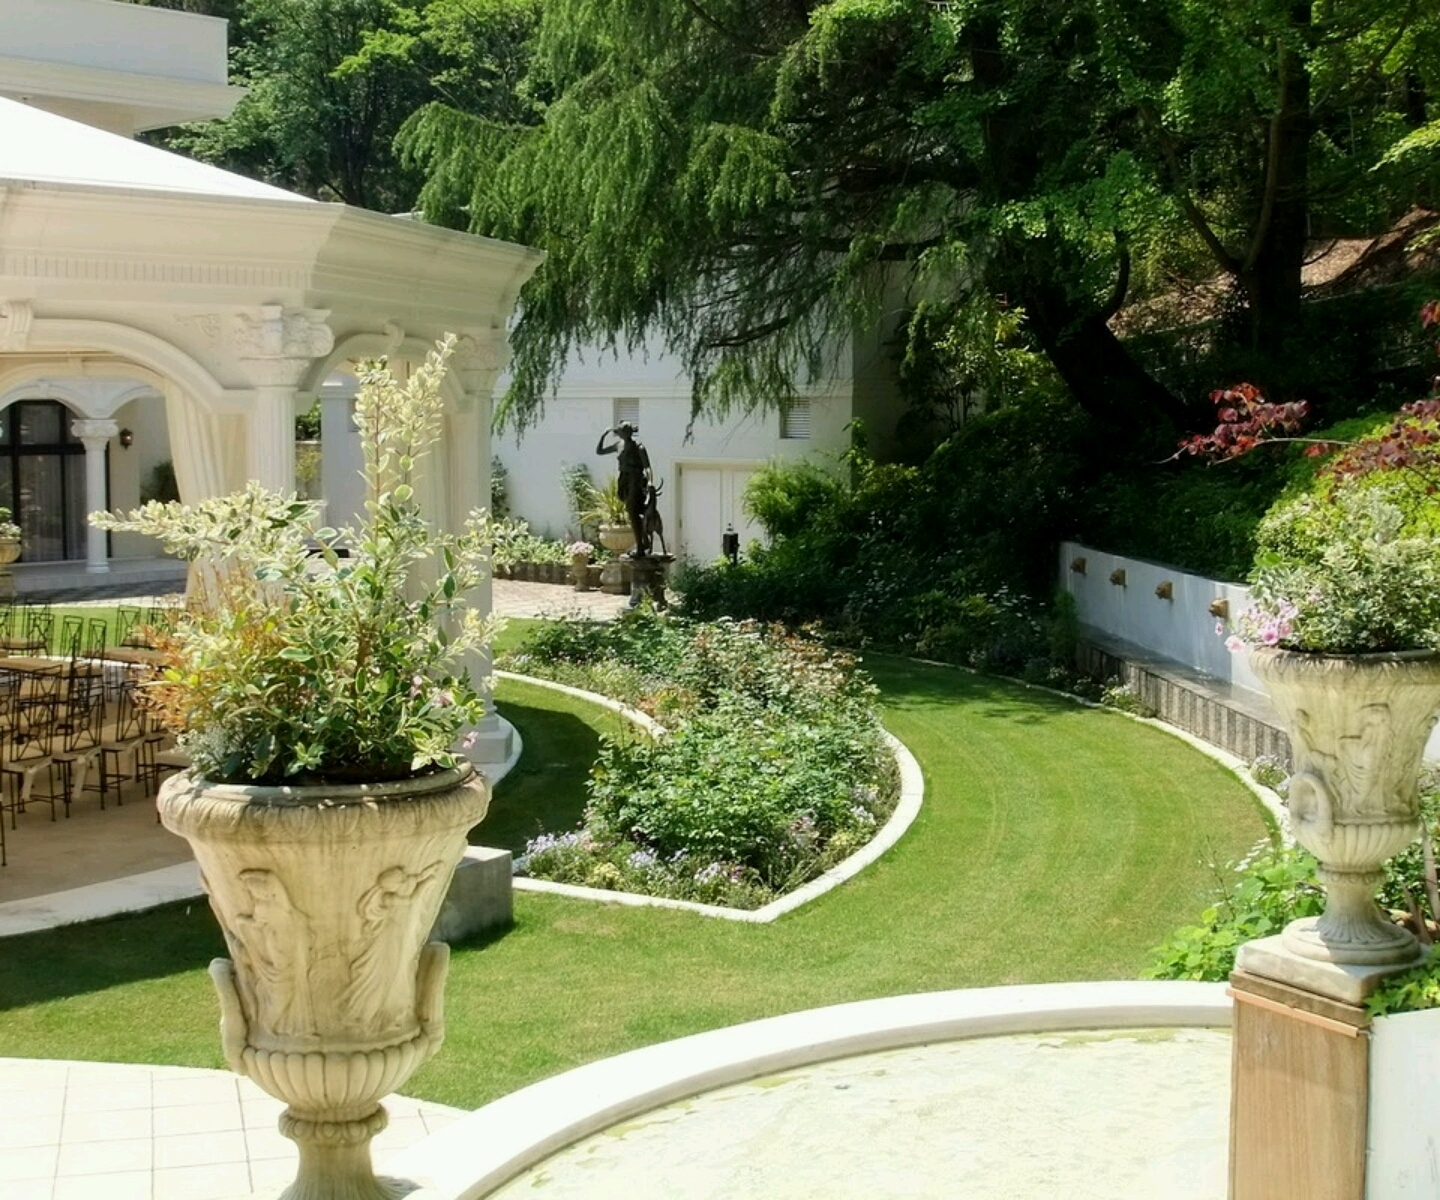 Amazing Of Excellent Home Garden Designs House Garden Des #5325 with New House Garden Design Ideas